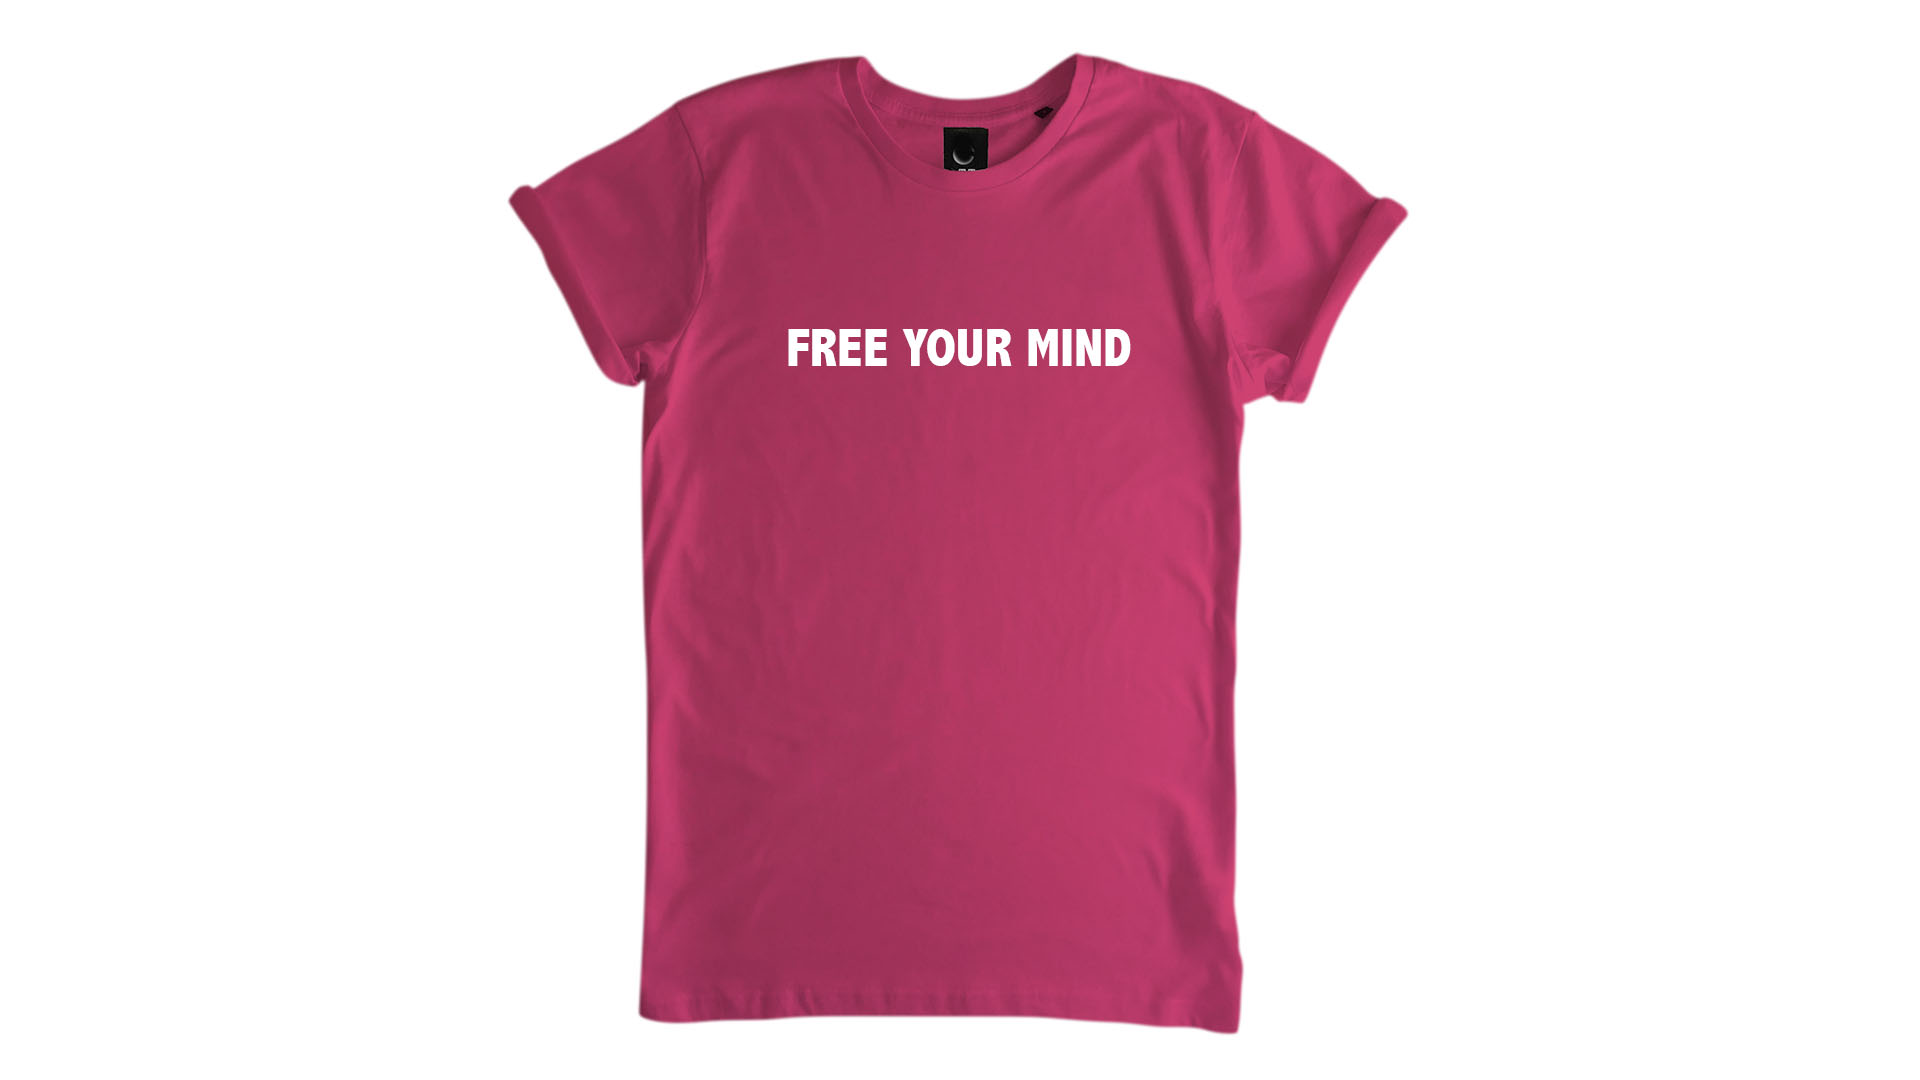 LiveLearn.Yoga Yoga T-Shirt Organic Cotton Free Your Mind Pink